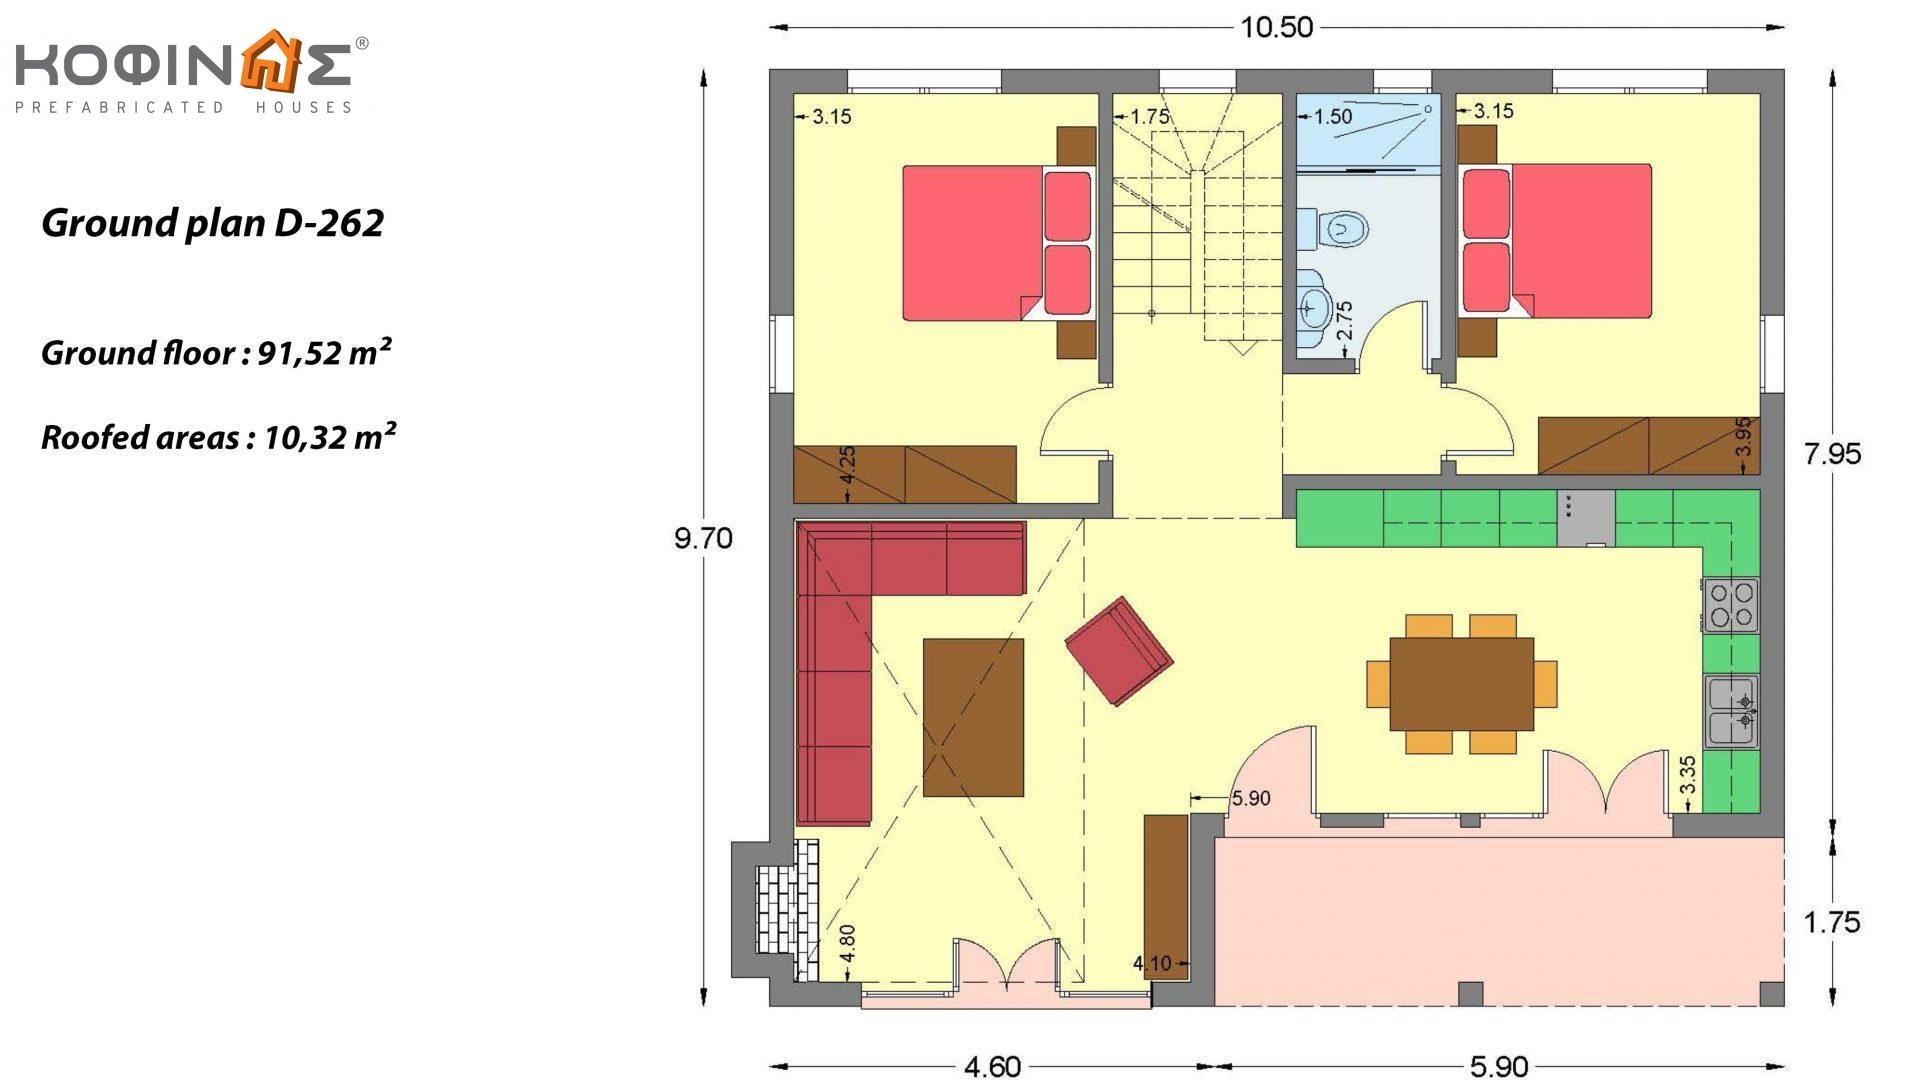 Two story house D-262, total surface 262.37 m²